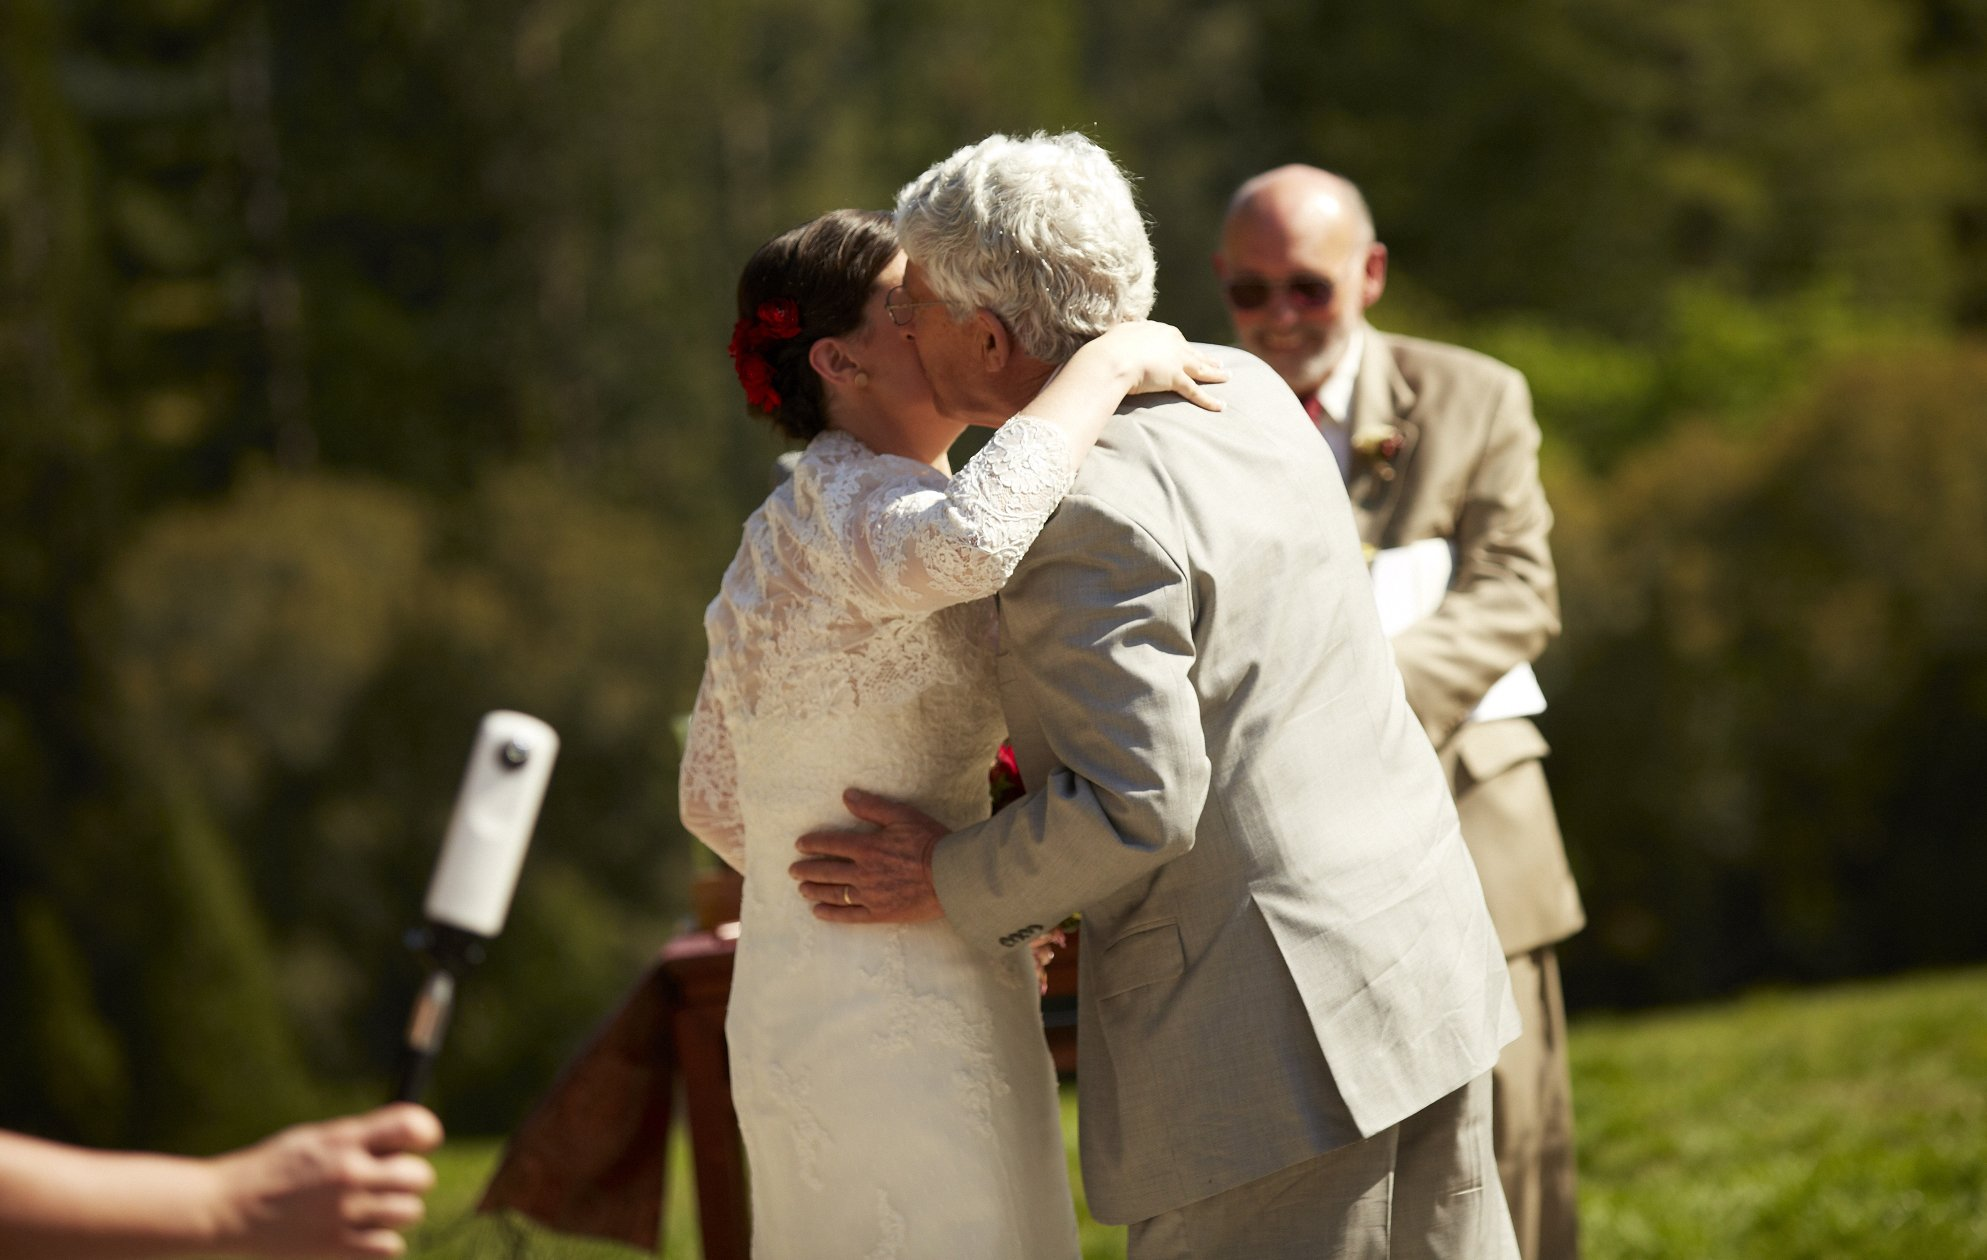 Stepparents At The Wedding Experts Advise Being Inclusive